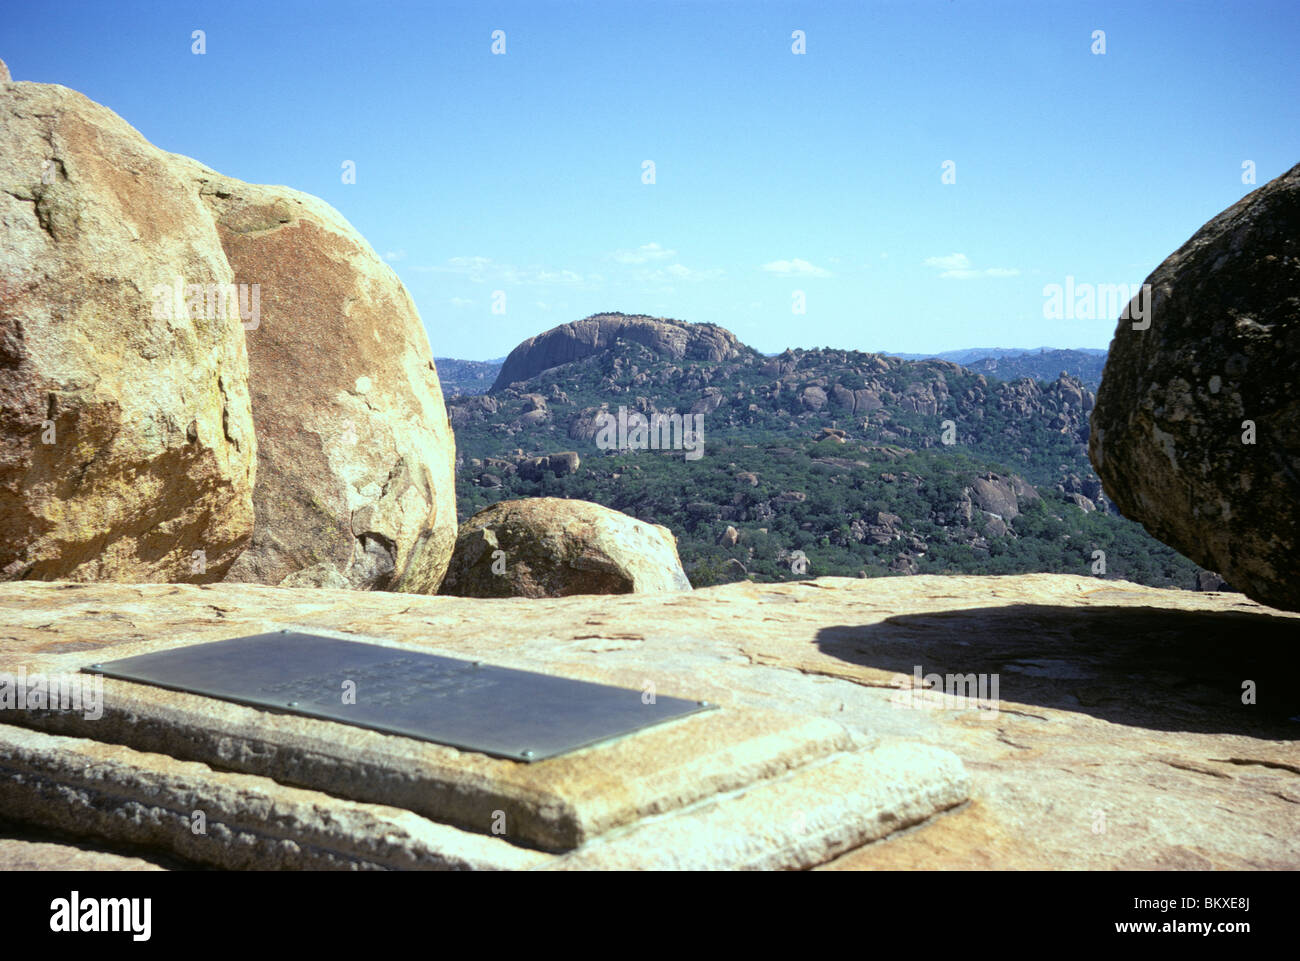 The grave of Cecil Rhodes at World's View, amidst the granite landscape of the Matopos Hills, Zimbabwe - Stock Image